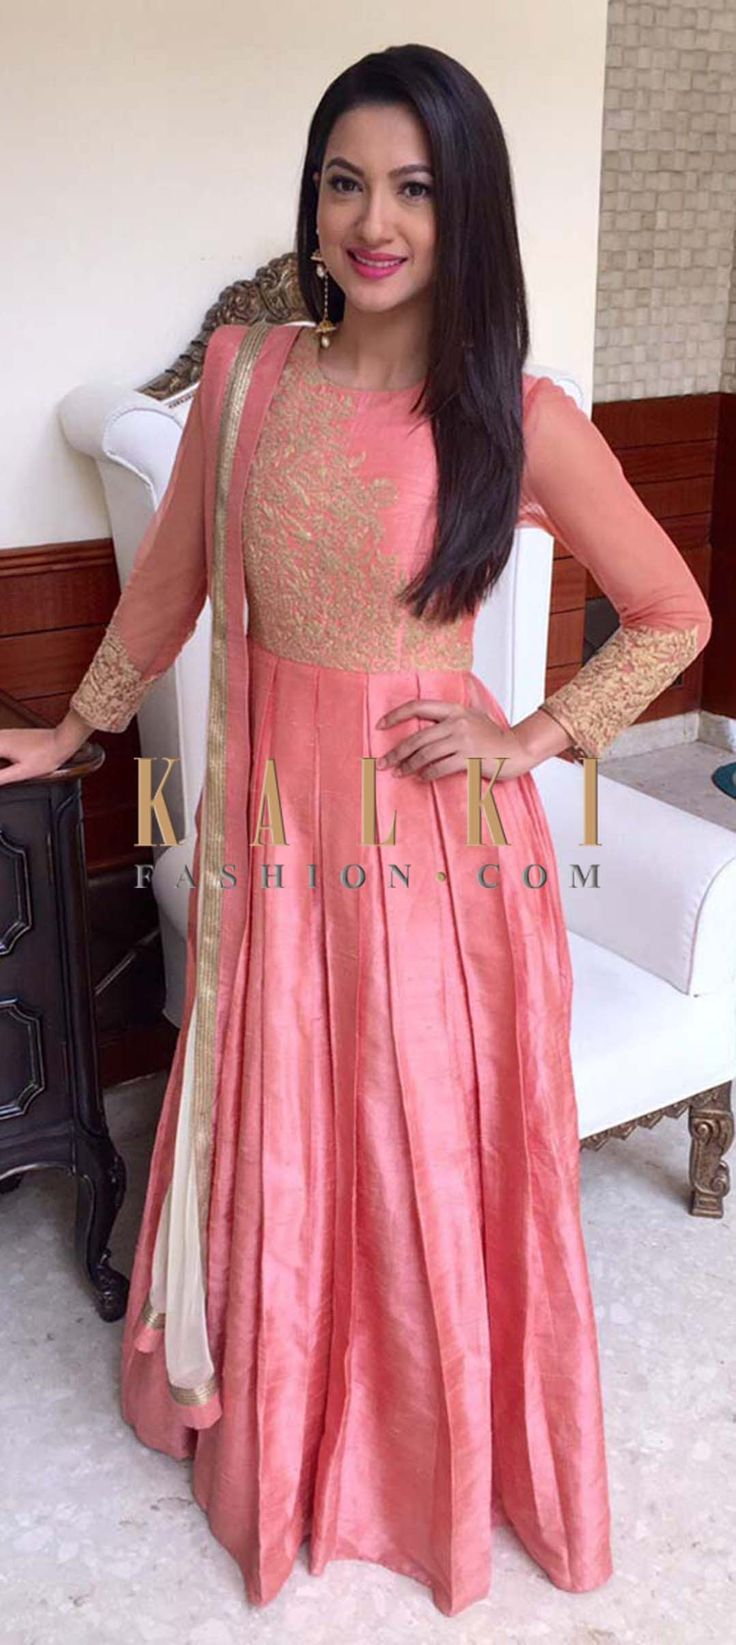 Must have Bollywood Style! Find a style match to the celebrity look of your choice @http://www.kalkifashion.com/salwar-kameez/anarkali-salwar-kameez.html